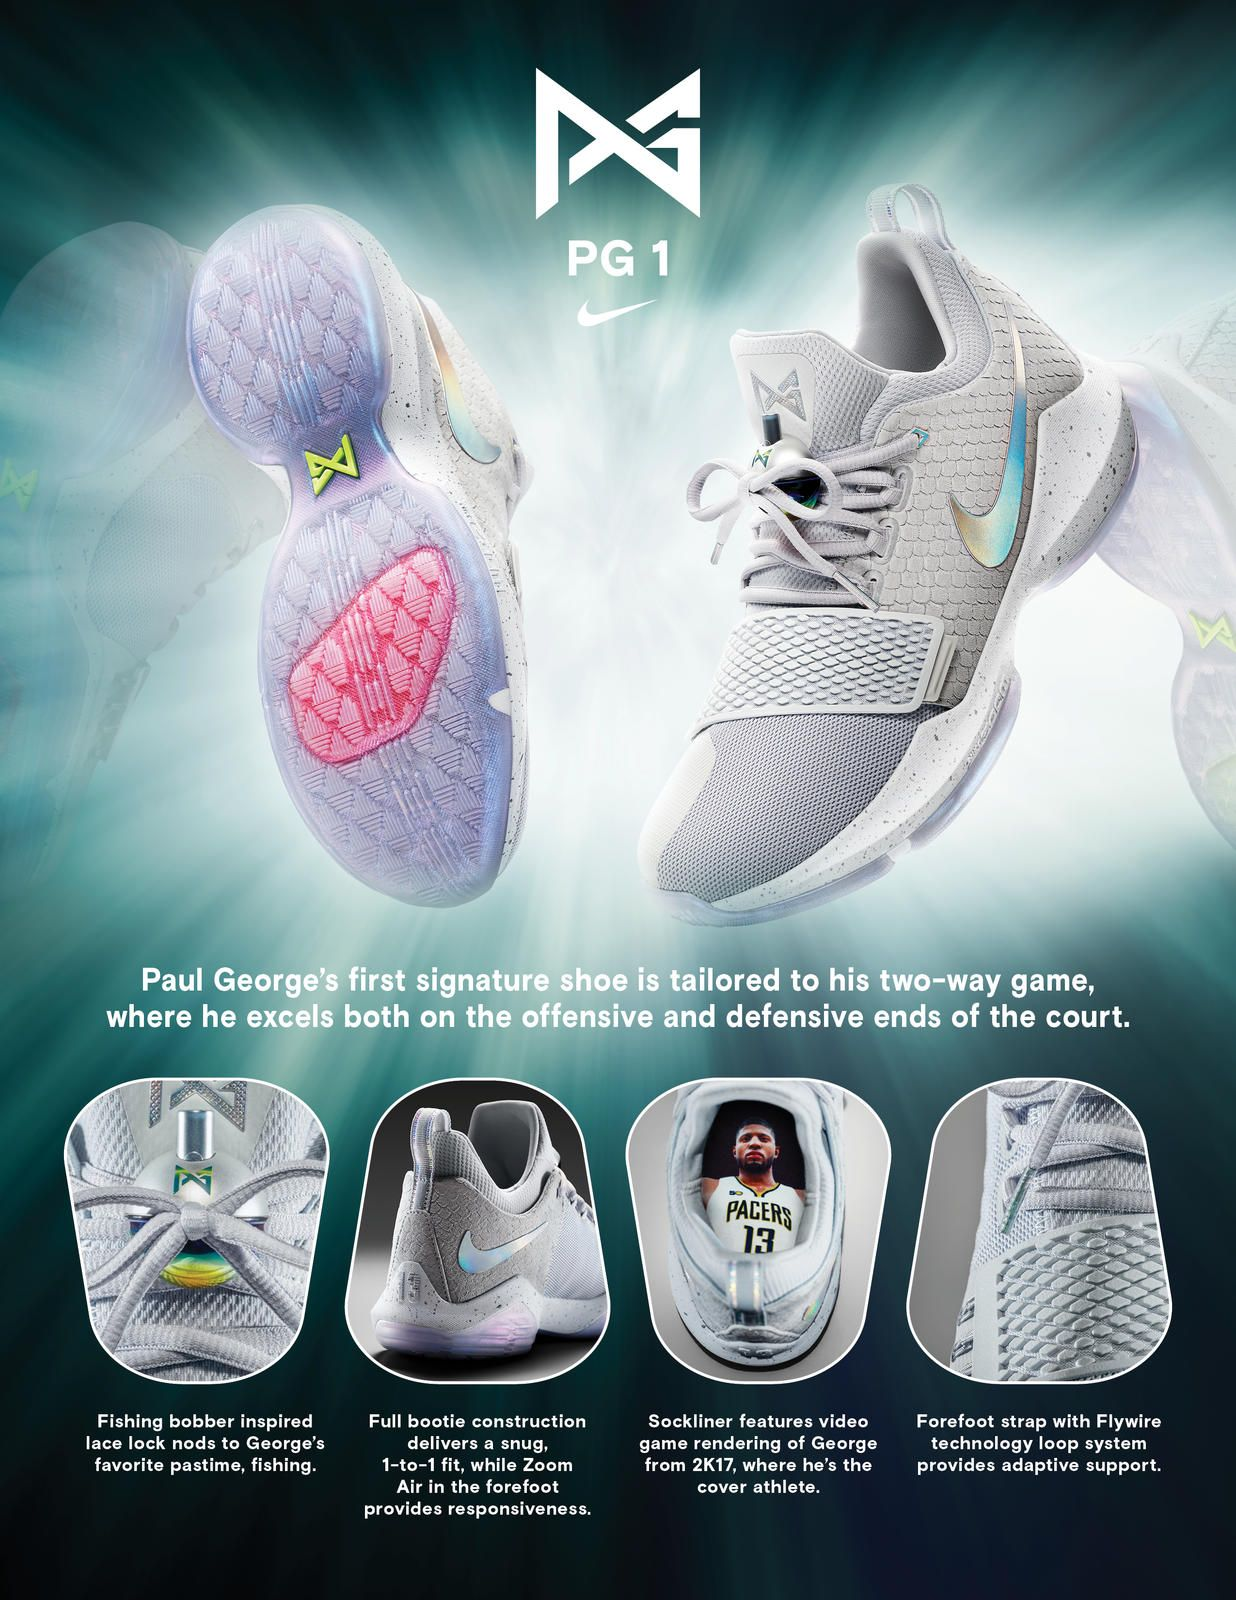 cf2198ef6e0c Nike News - PG1 Reflects Paul George s Versatility on Both Sides of the  Court